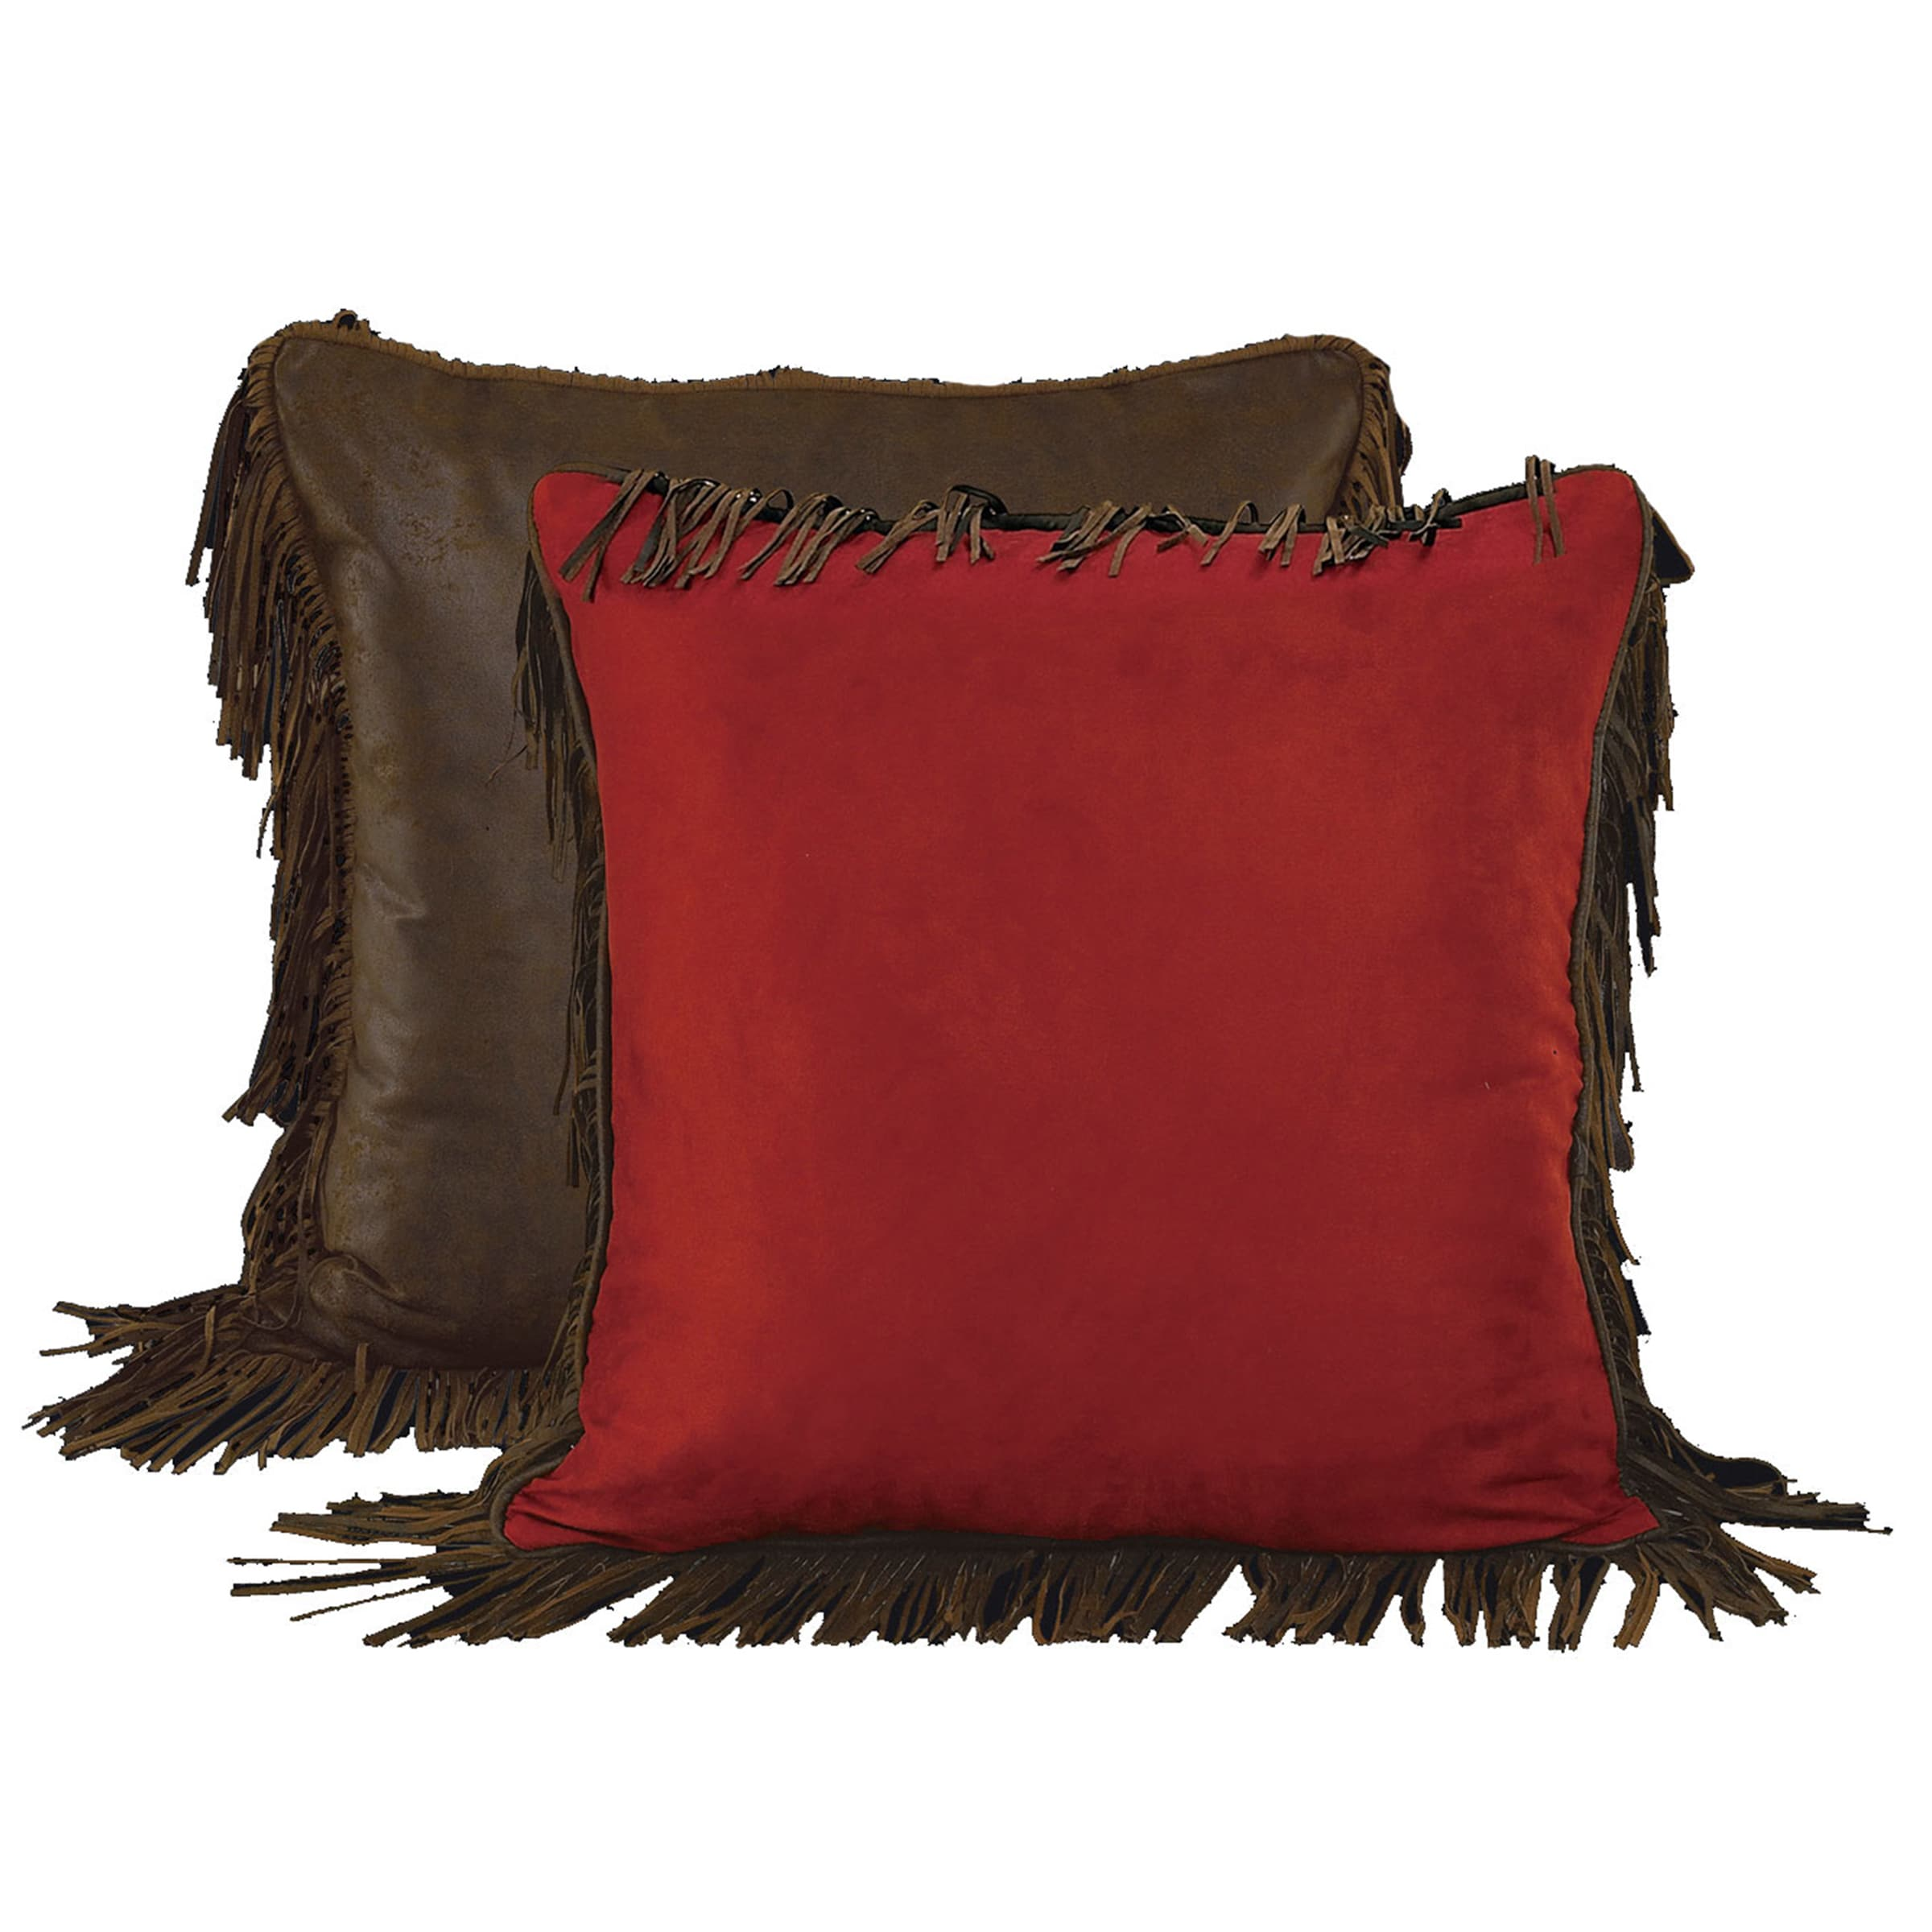 HiEnd Accents Red Faux Suede Euro Throw Pillow (Euro Sham...